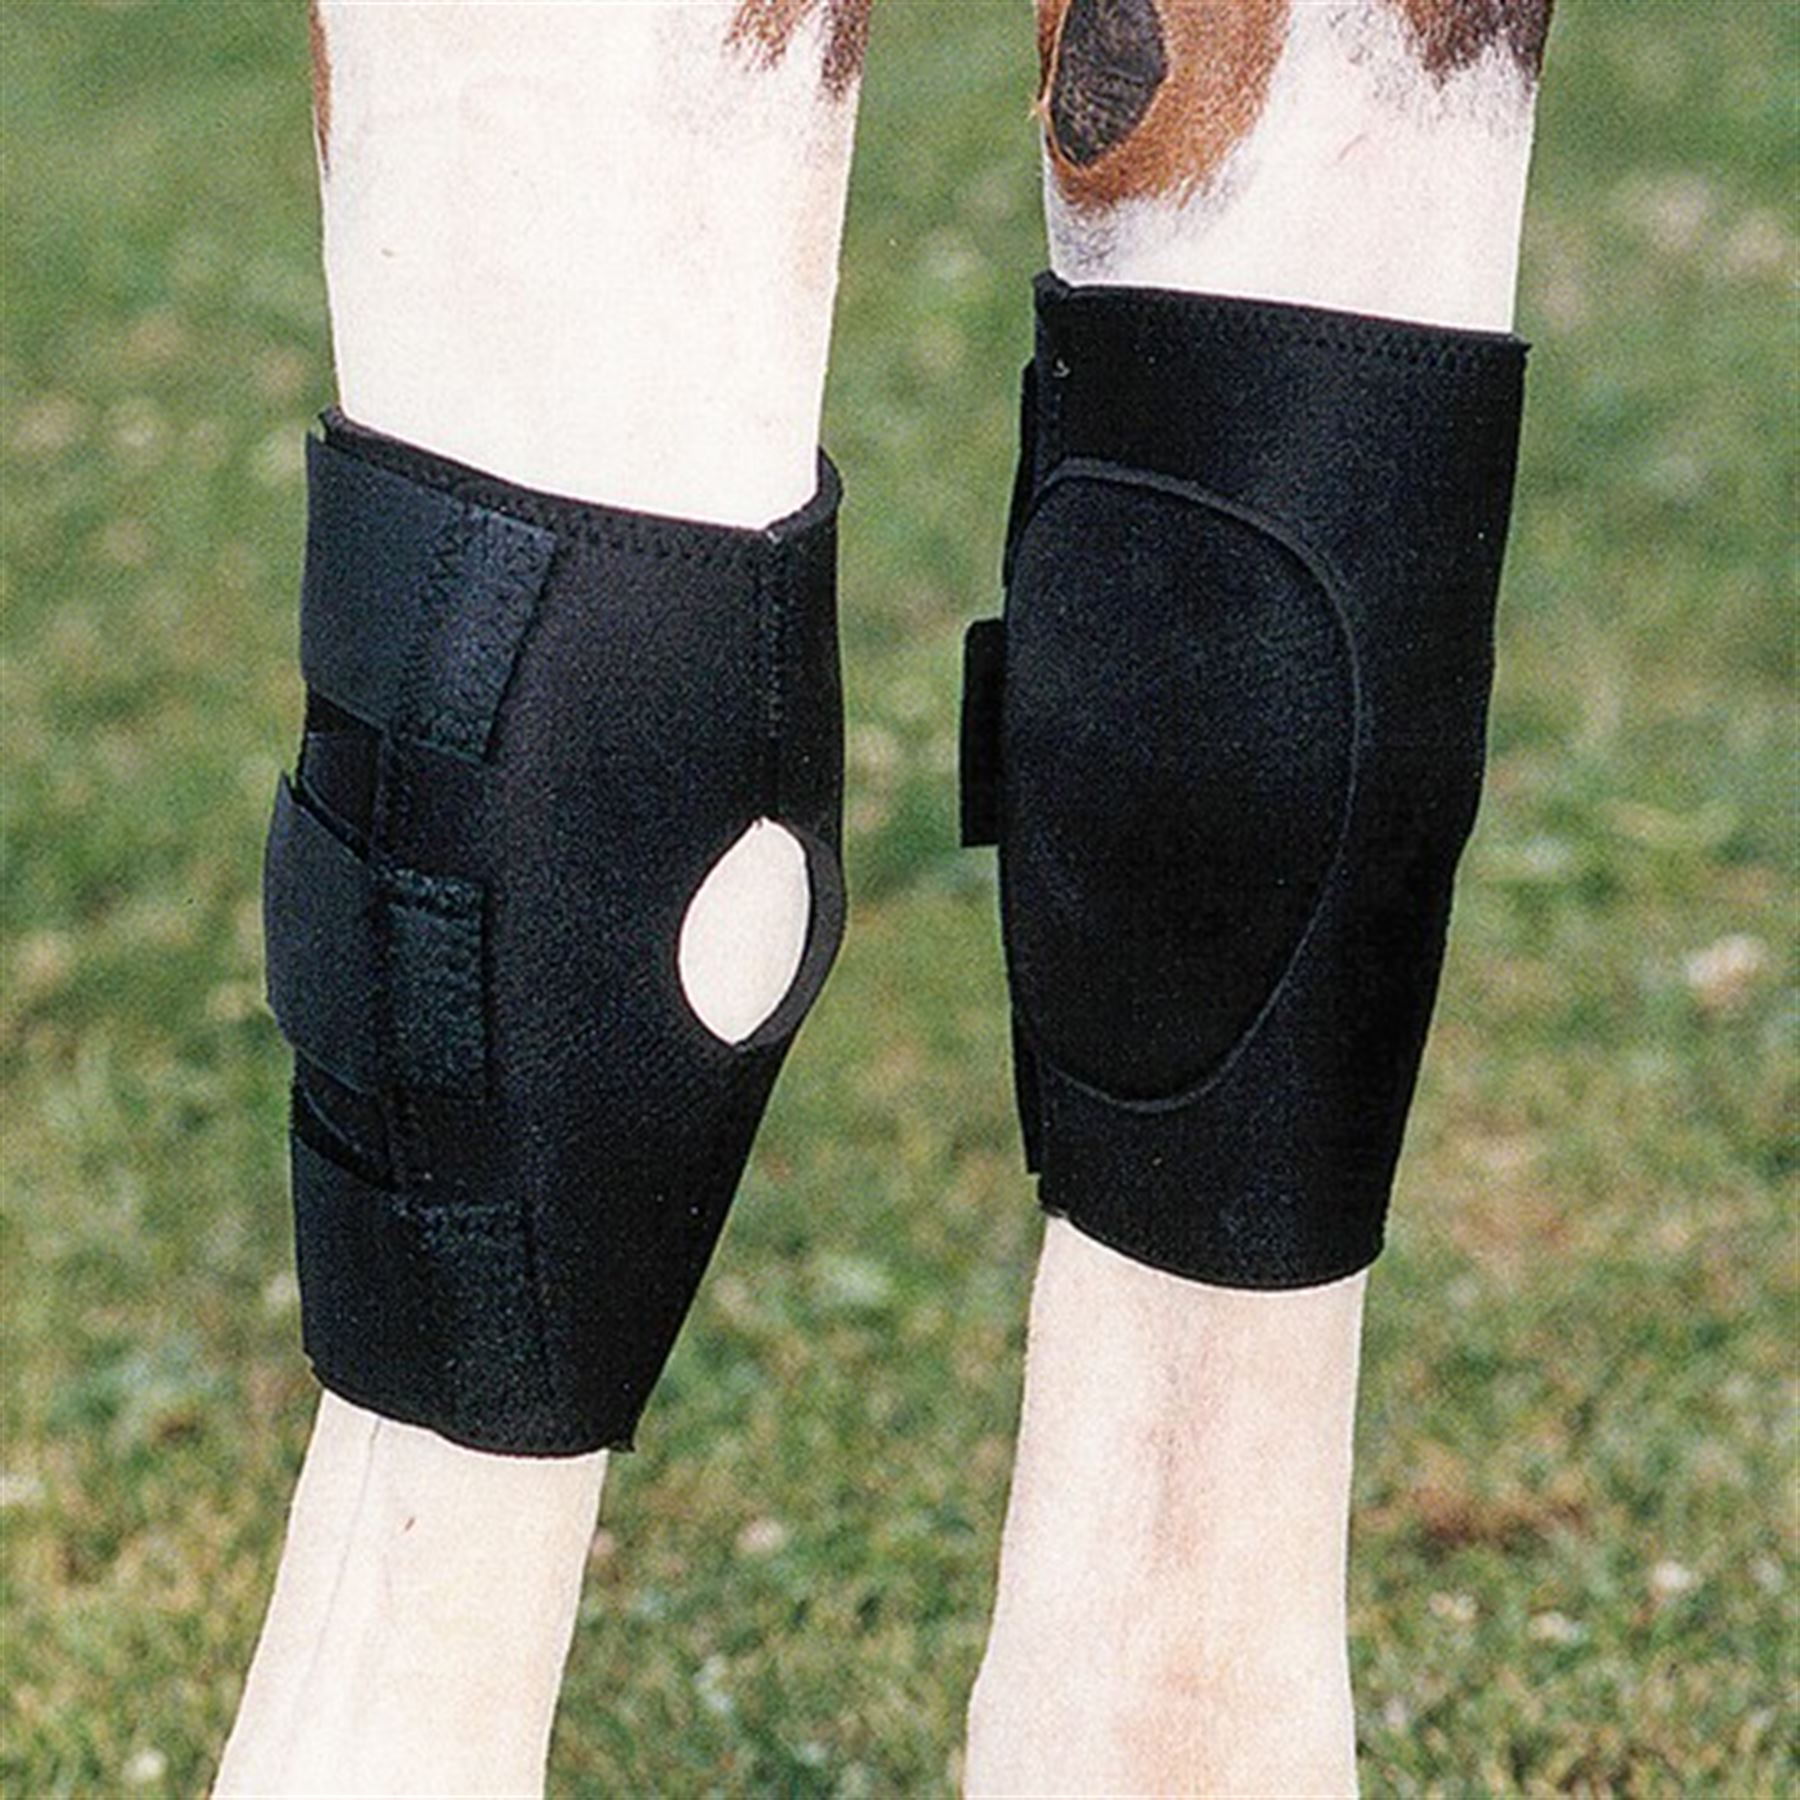 Dura-Tech® Knee Boot